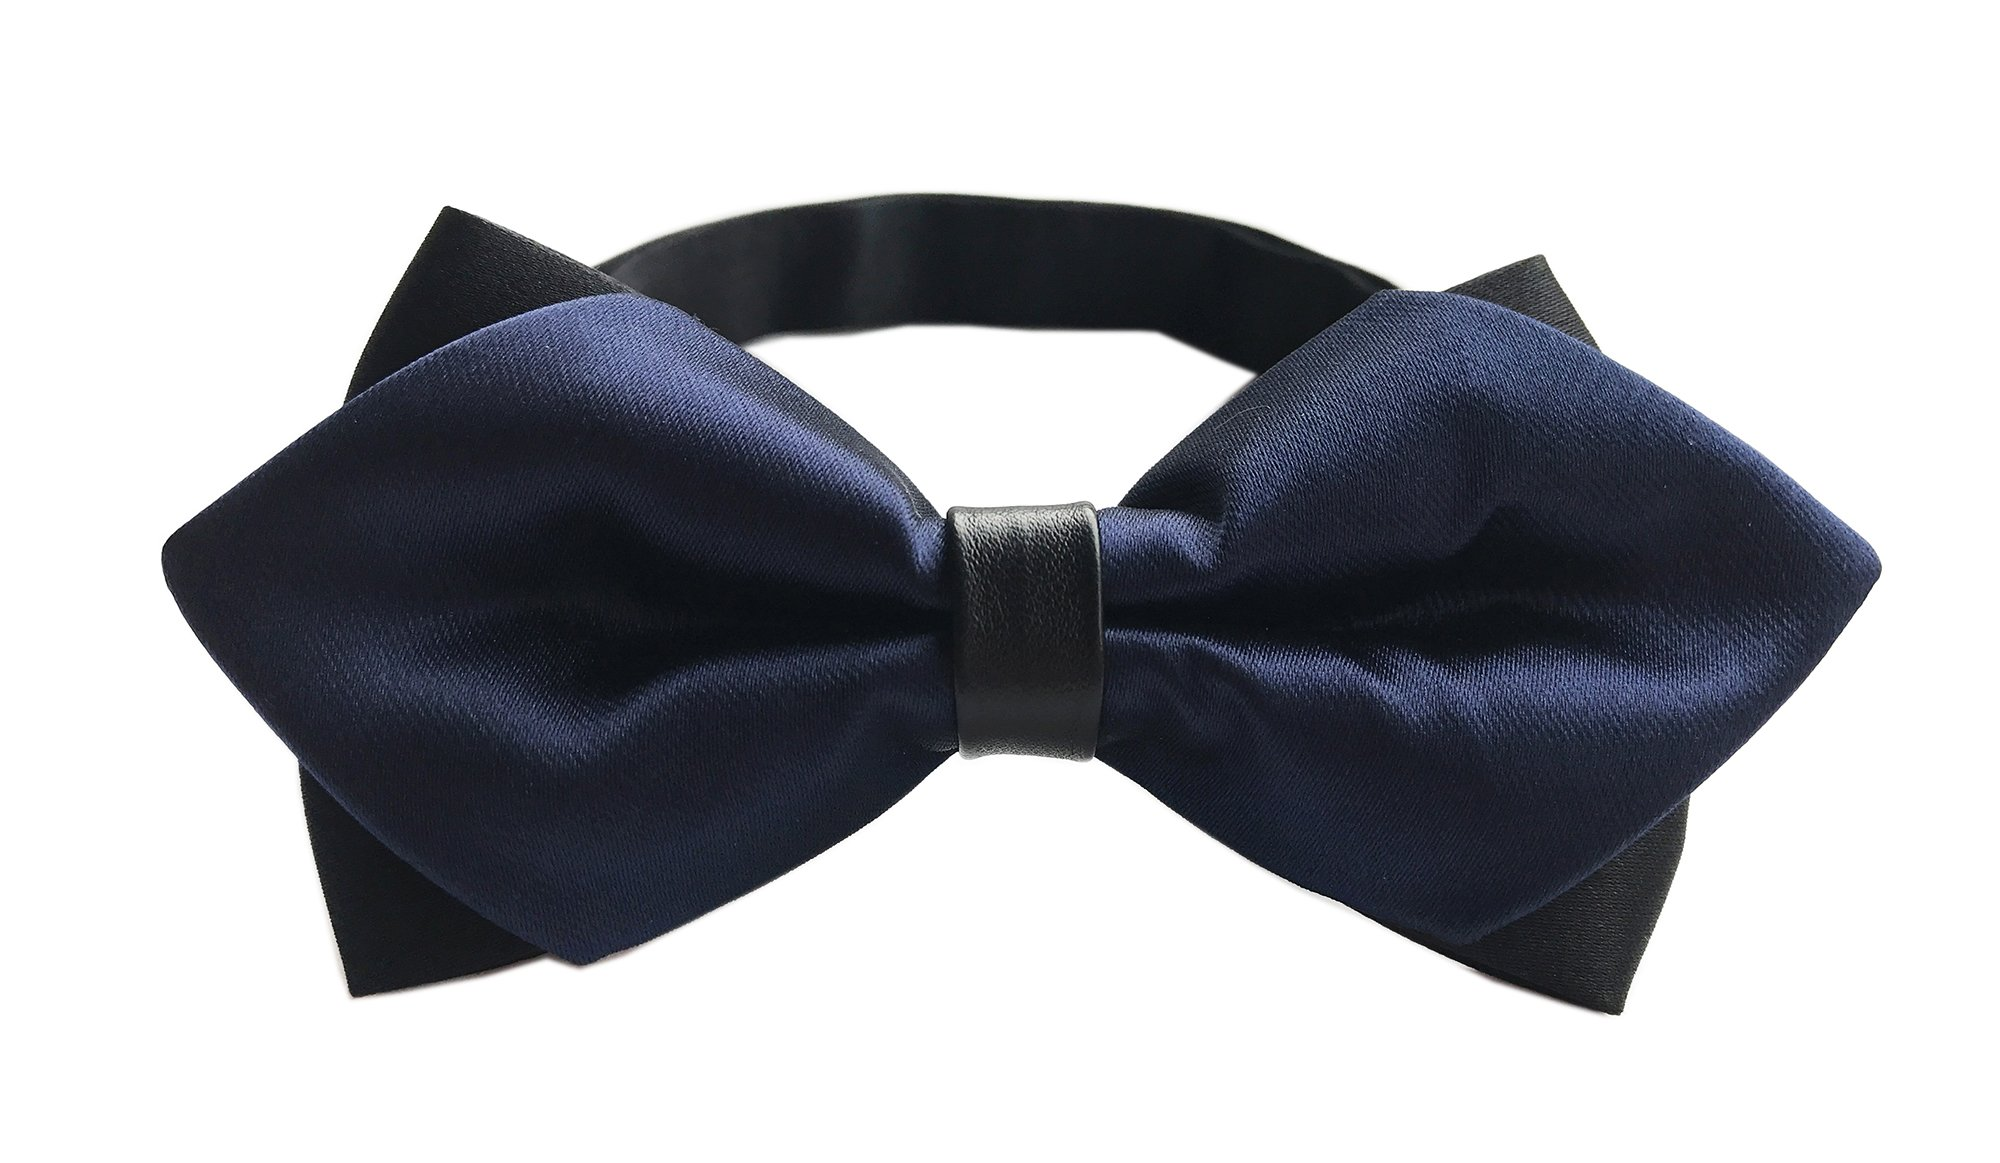 Big Boy's Men's Navy Blue Satin Bow Tie Designer Bowties Best Xmas Gift for Guys